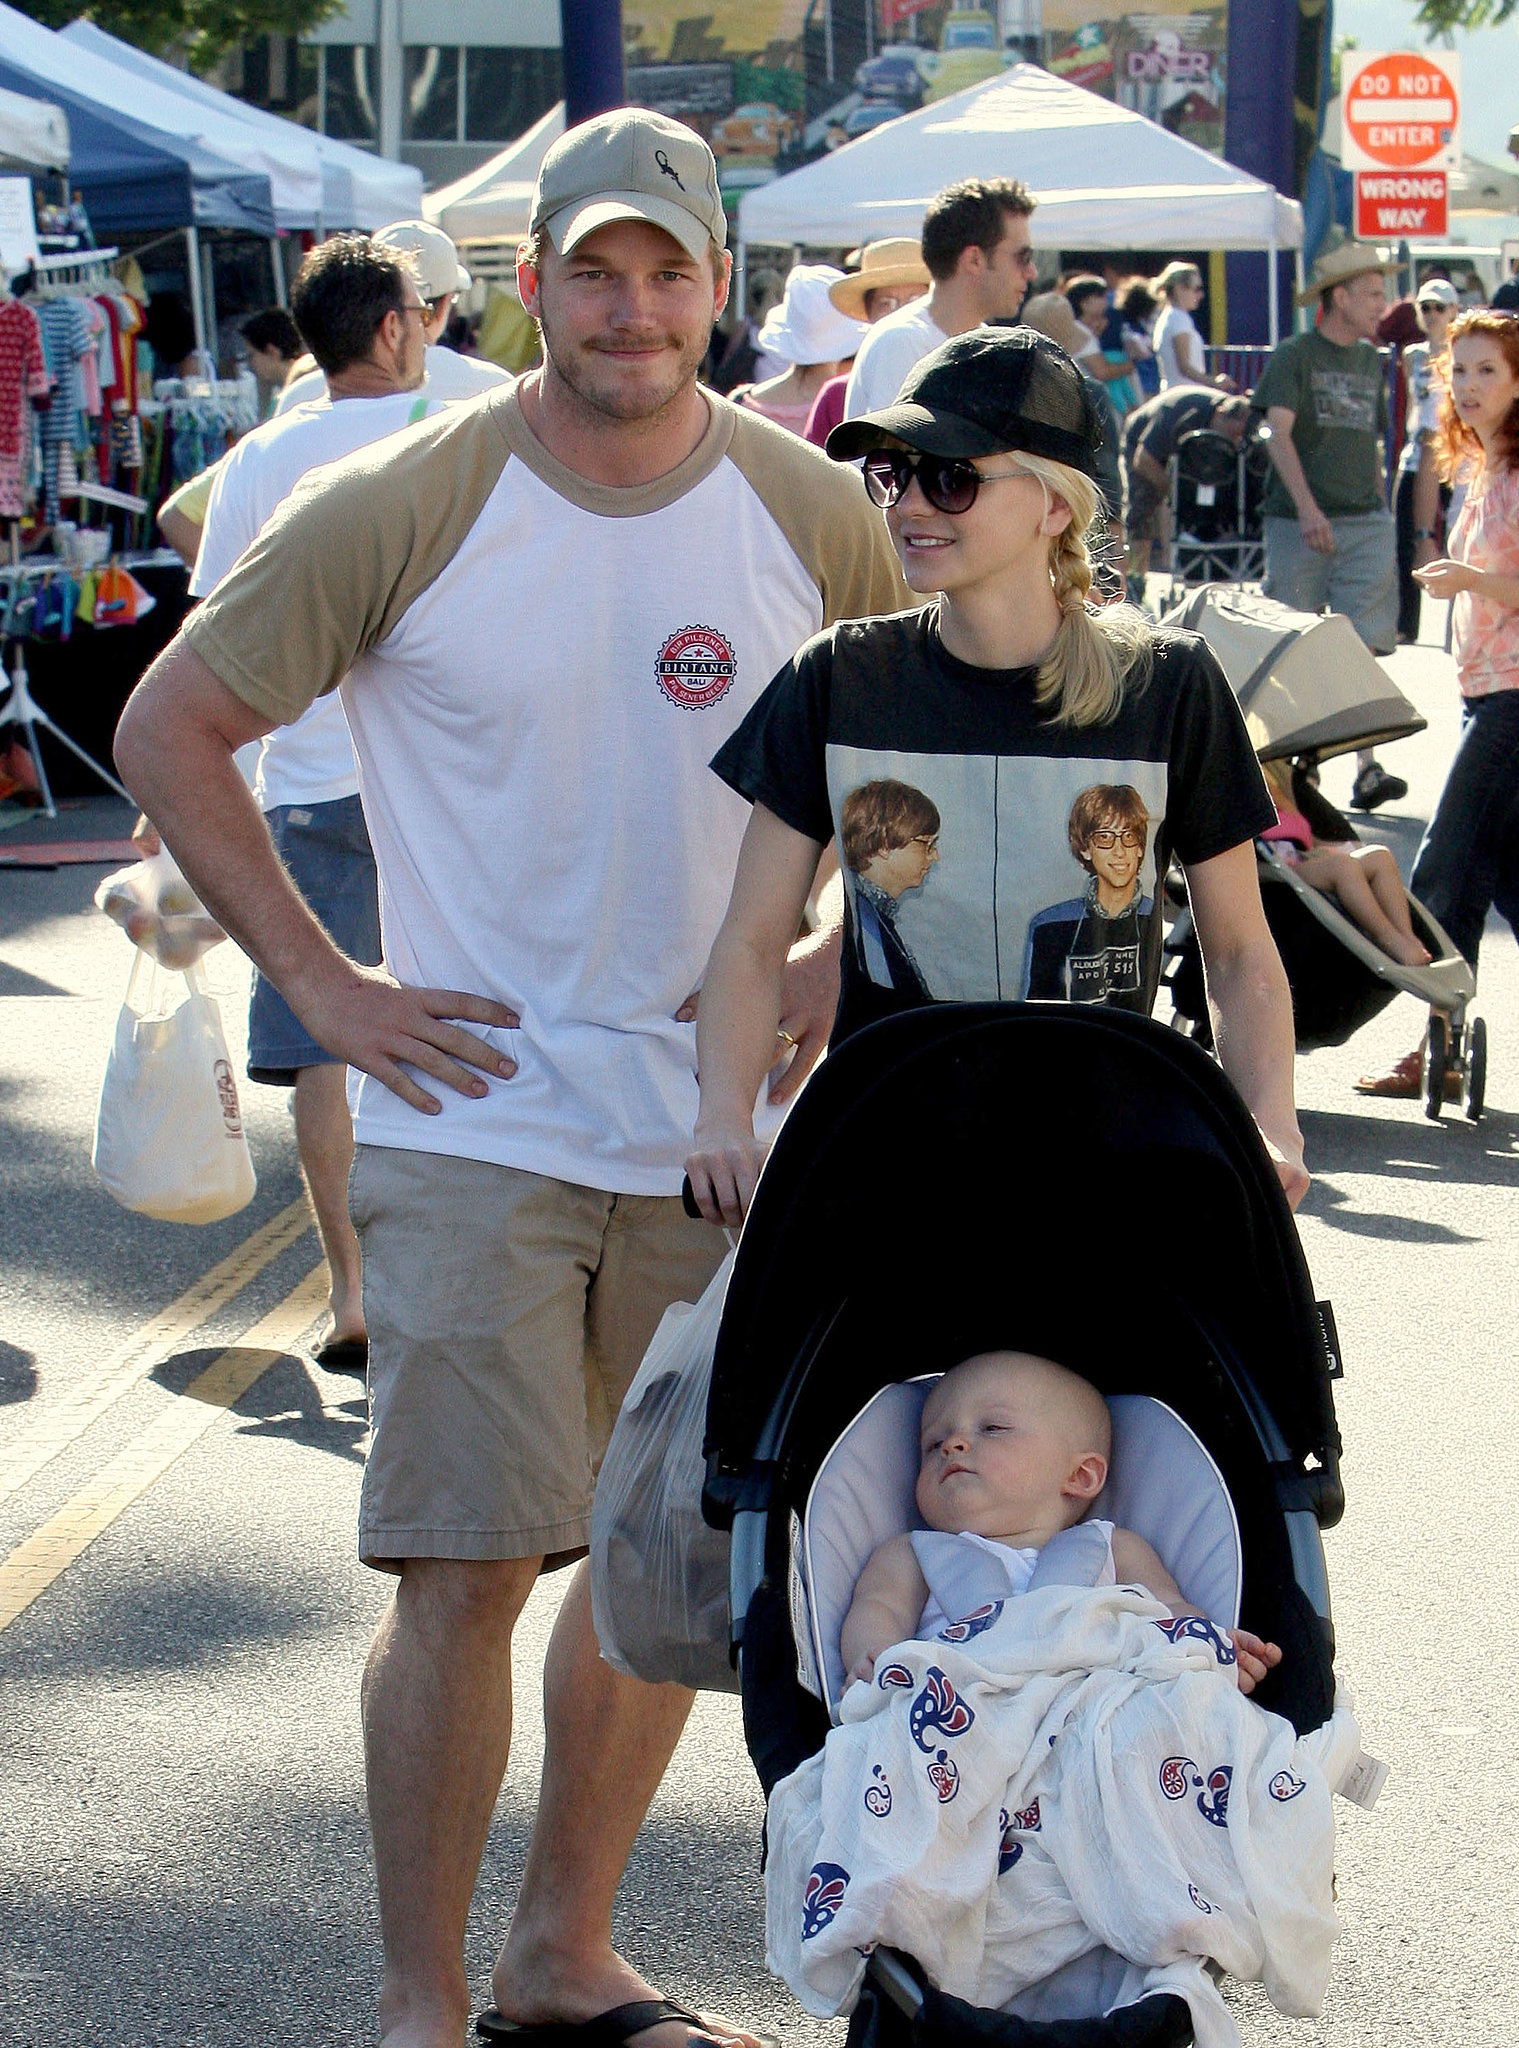 anna-faris-chris-pratt-spent-sunday-la-farmers-market